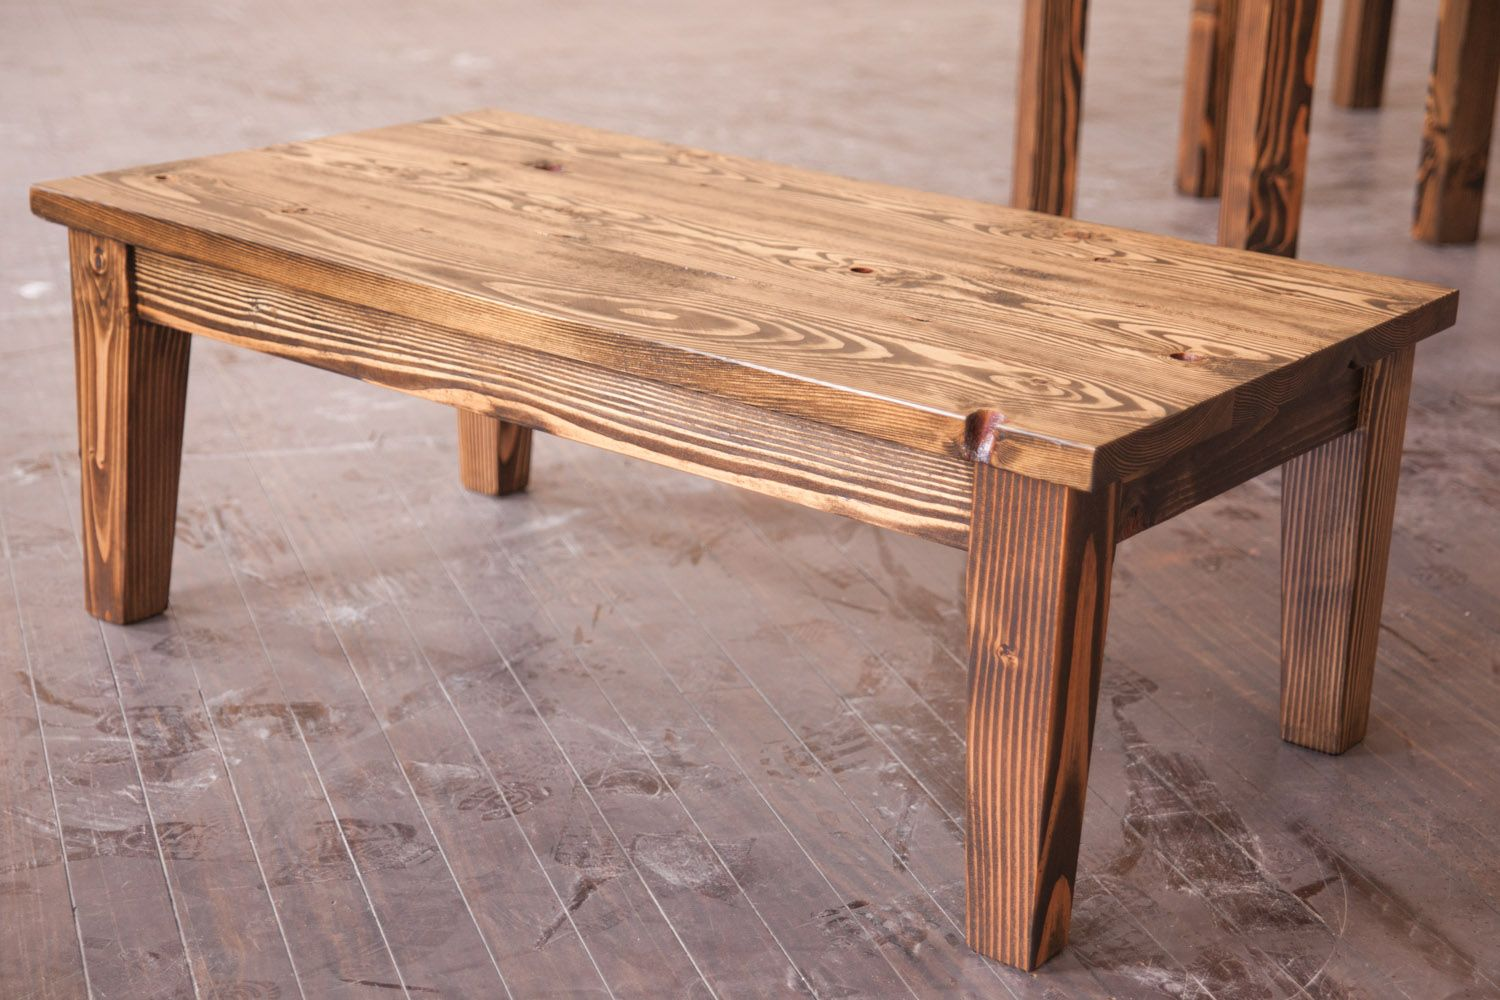 Tapered Coffee Table Legs 4 Farmhouse Coffee Table With Tapered Legs Stained Dark Walnut